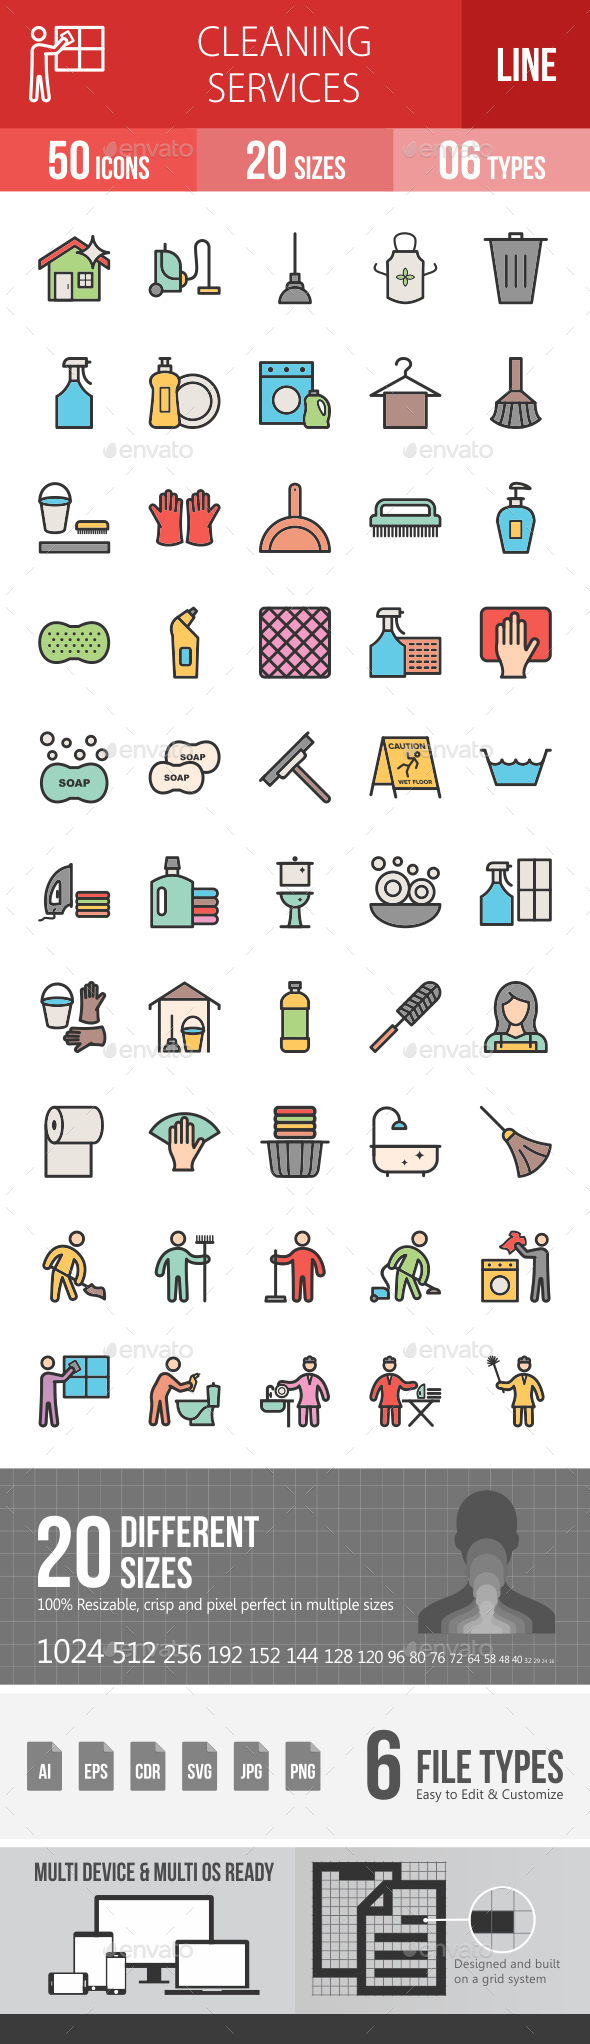 Cleaning Services Line Filled Icons - Icons